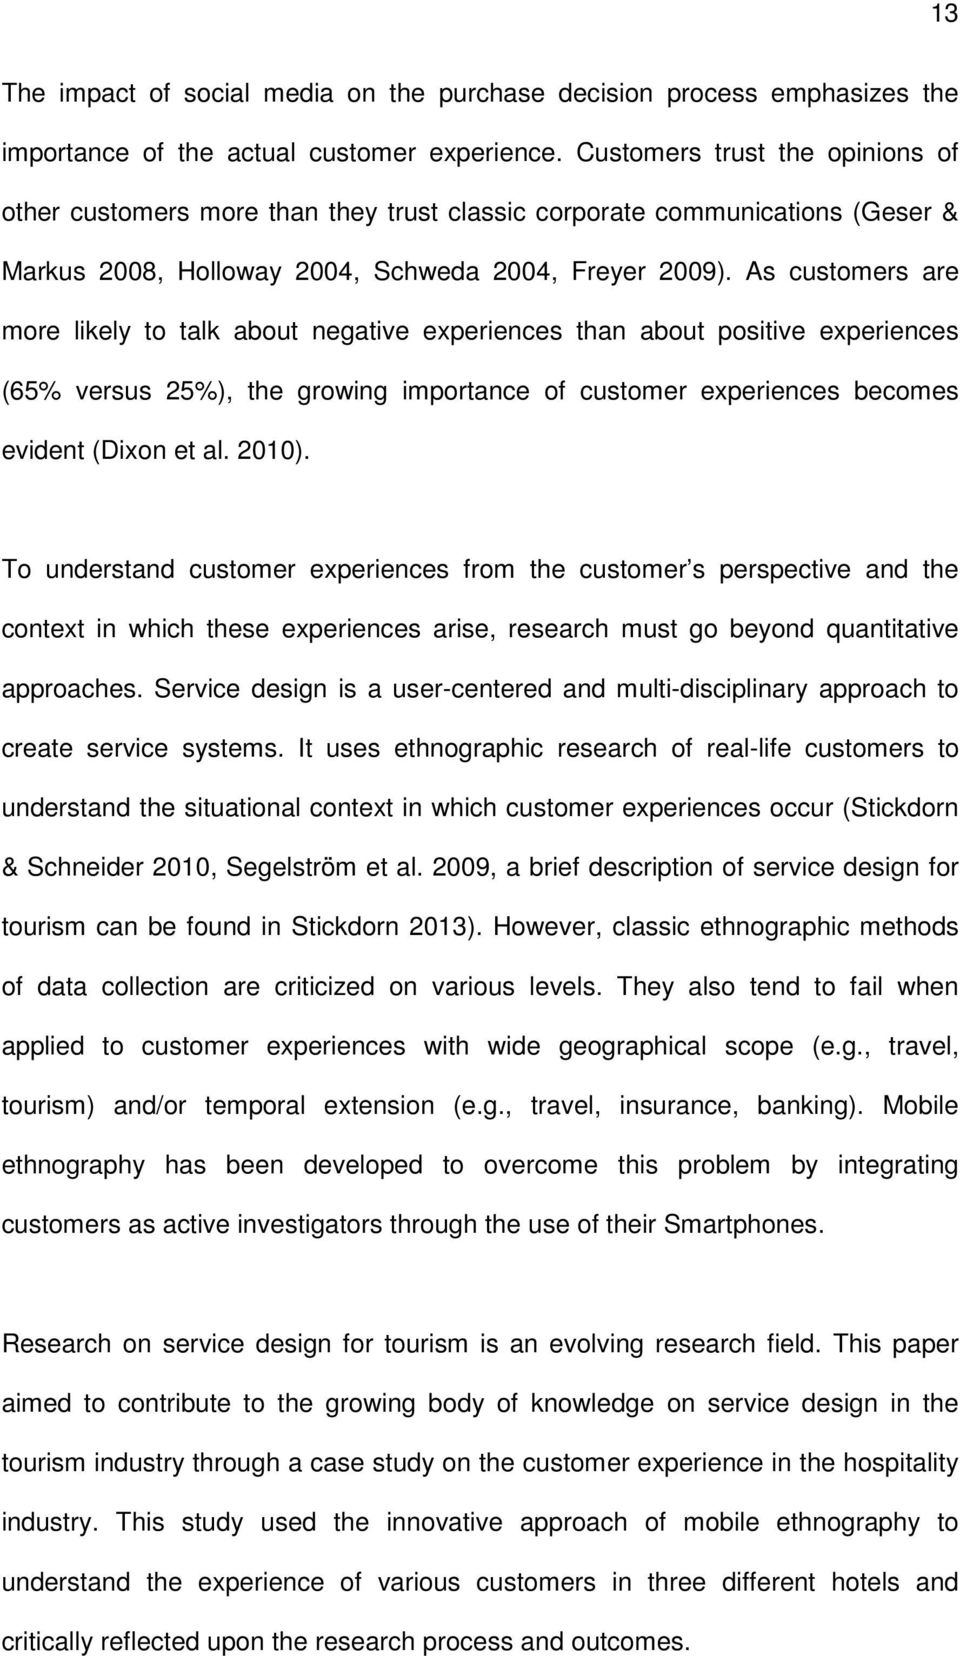 As customers are more likely to talk about negative experiences than about positive experiences (65% versus 25%), the growing importance of customer experiences becomes evident (Dixon et al. 2010).